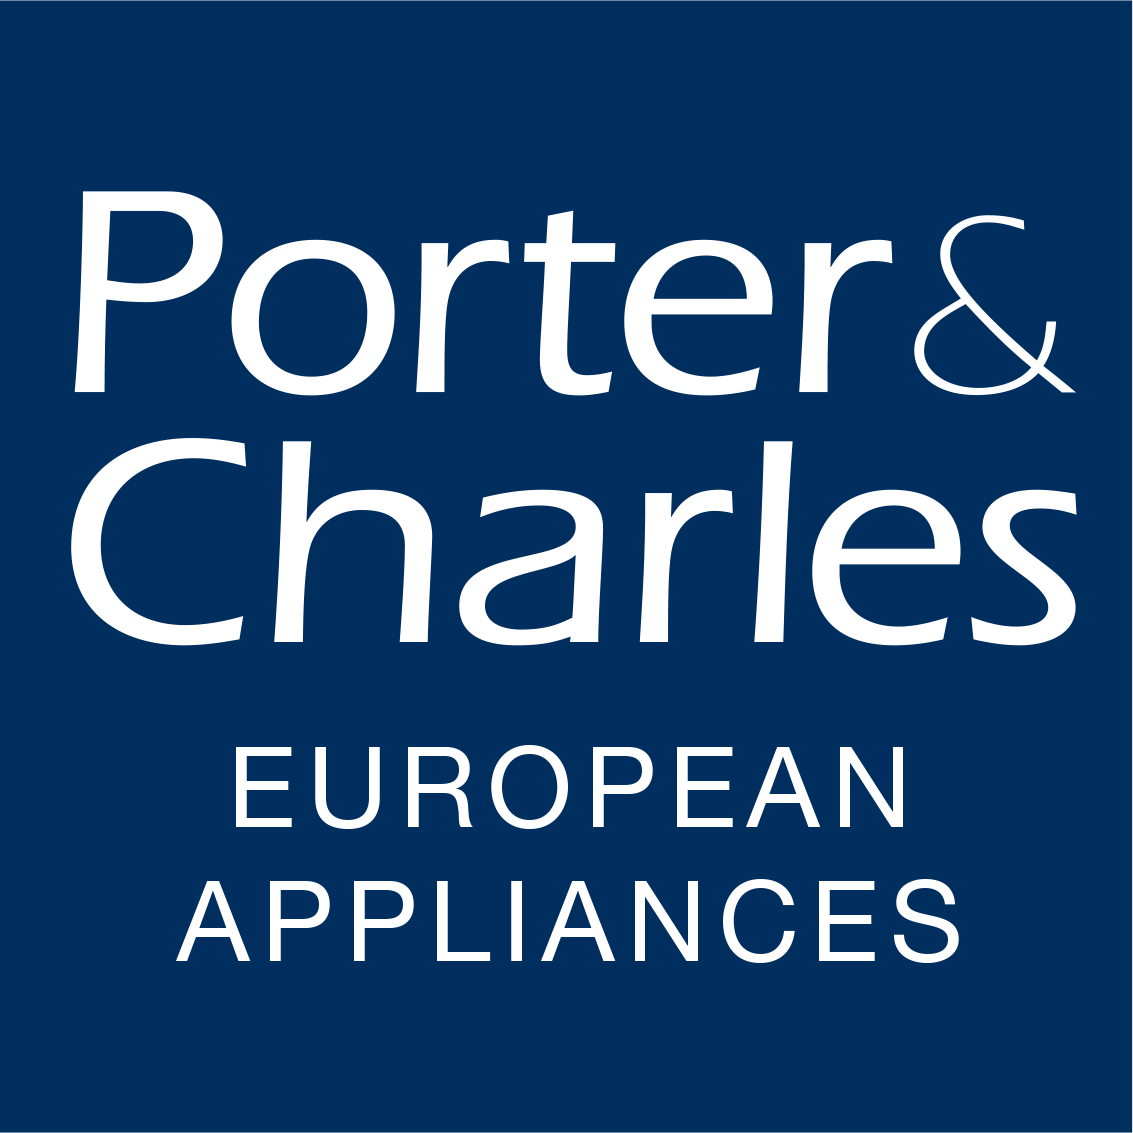 Porter & Charles European Appliances